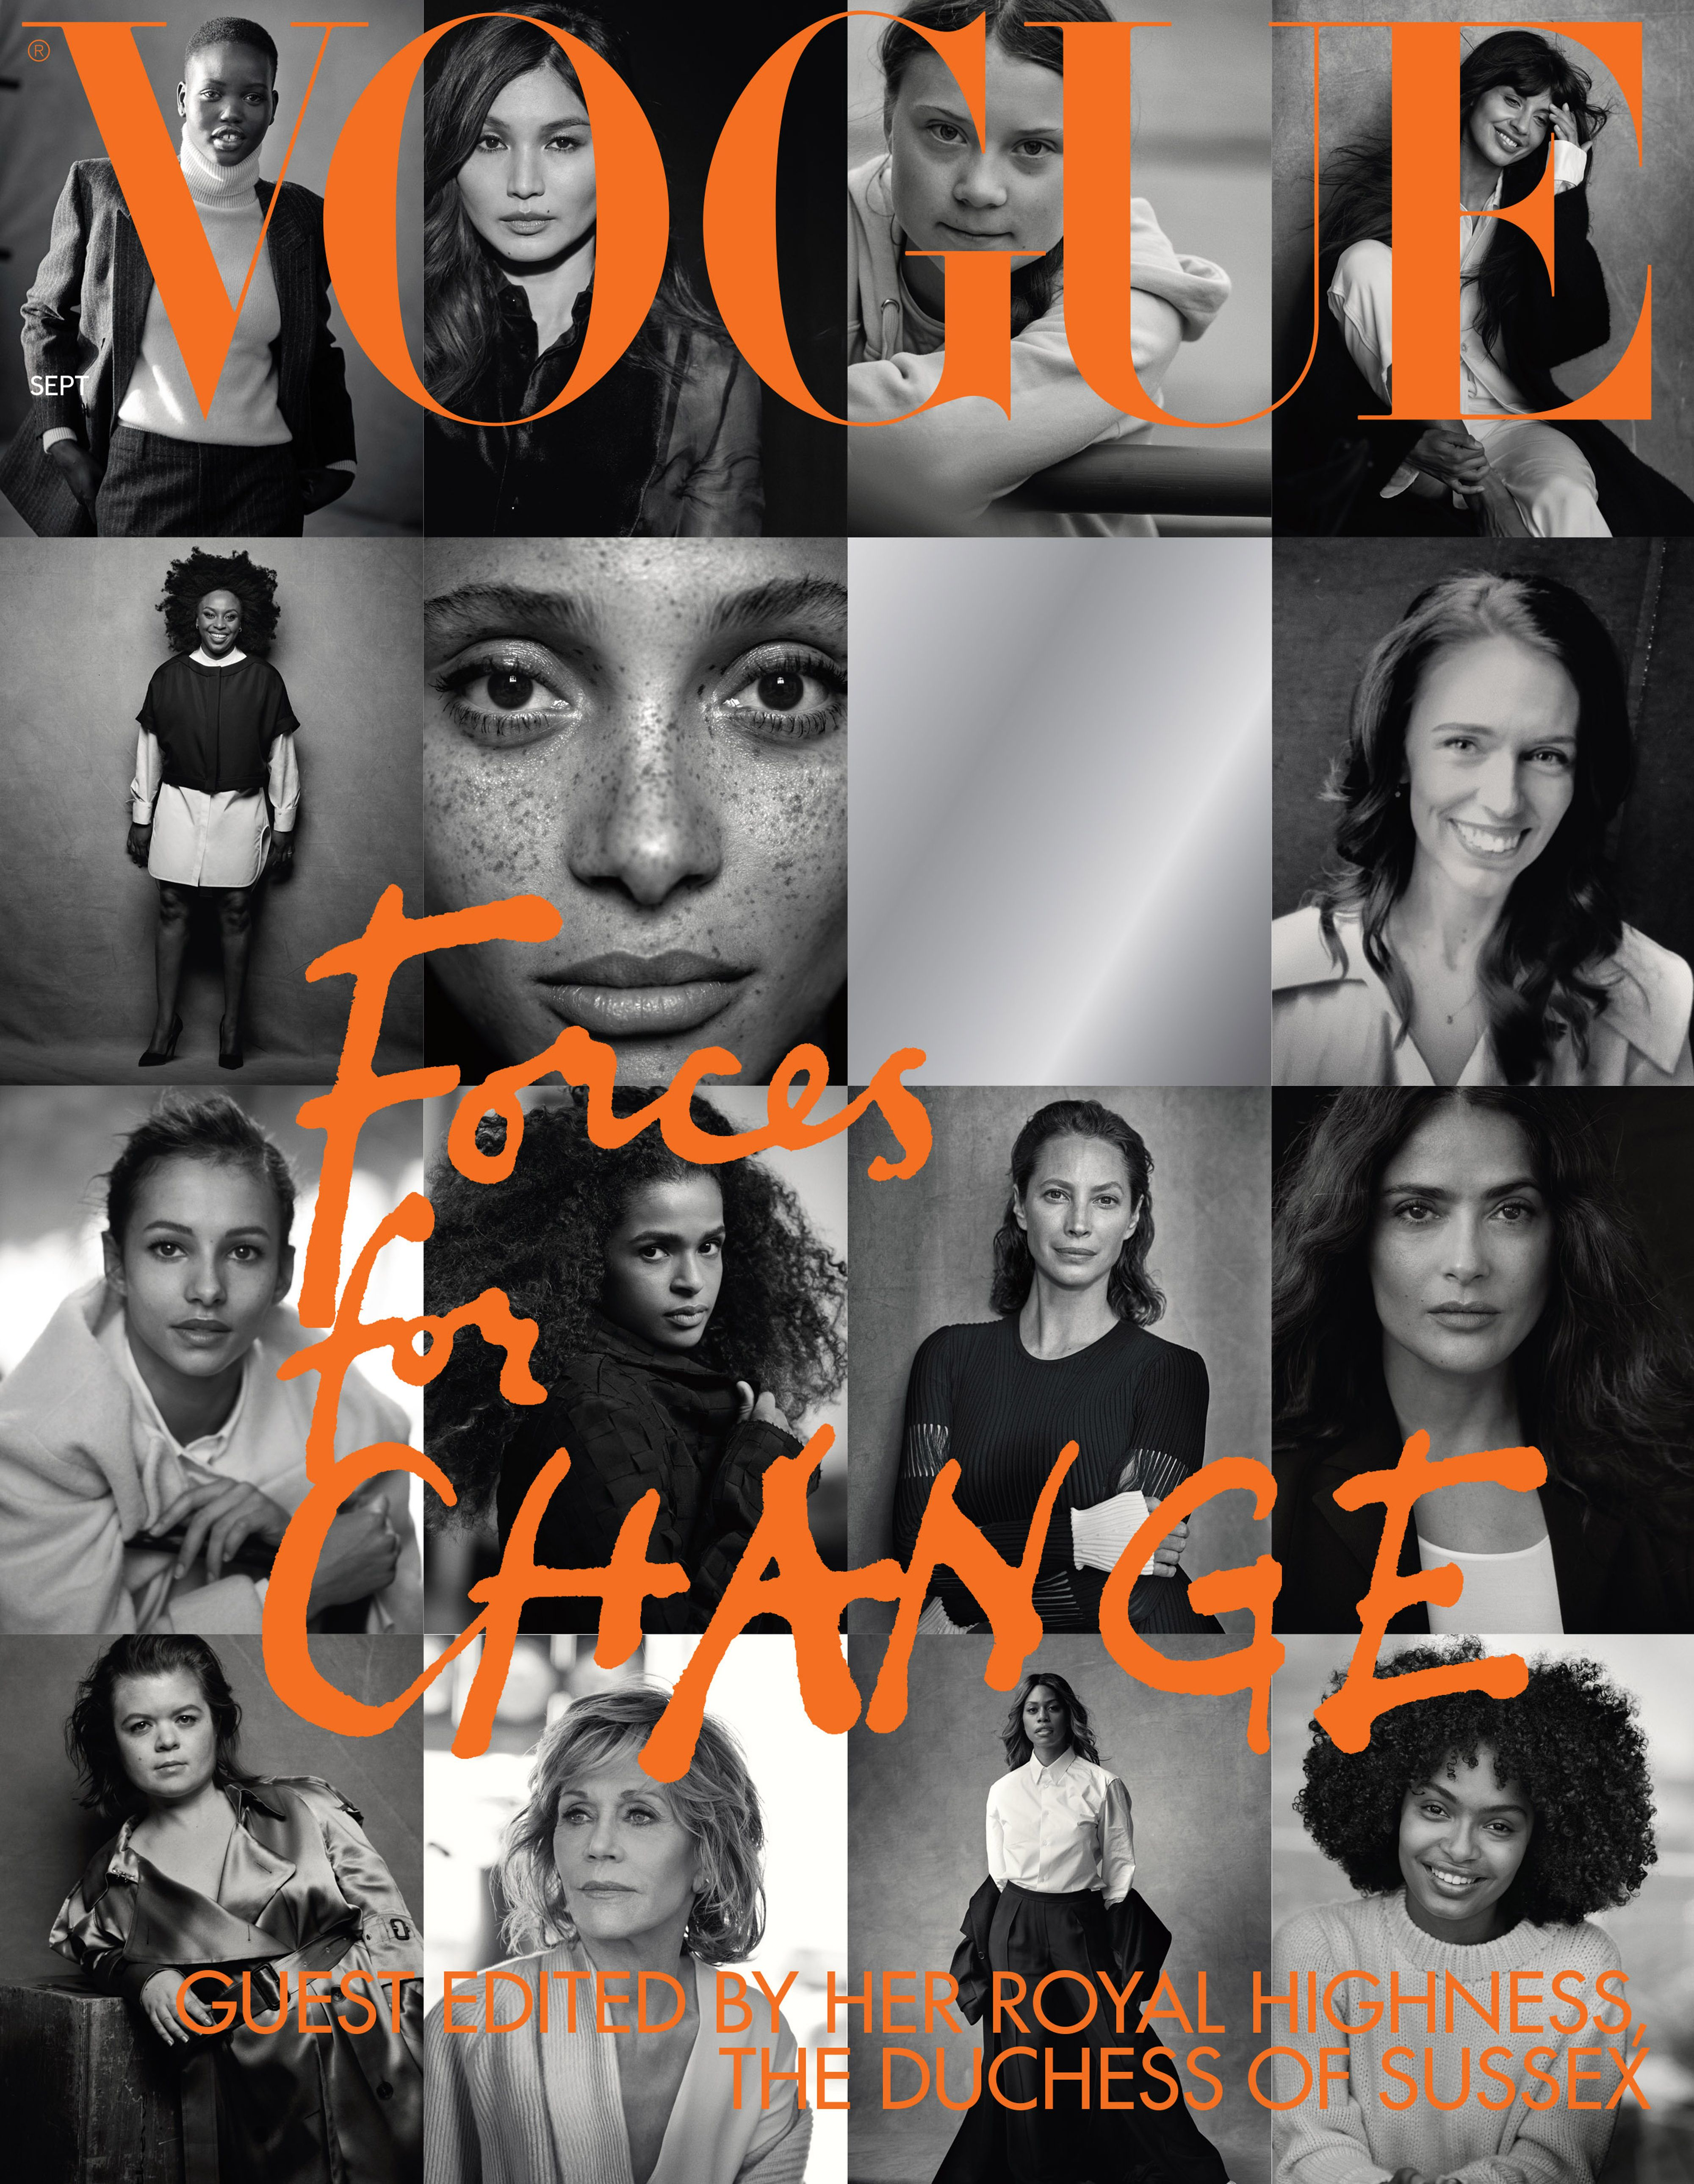 """This undated handout photo received in London, issued on July 28, 2019 by Kensington Palace shows the cover of British Vogue's September issue, entitled """"Forces for Change"""", showing photographs by Peter Lindbergh, which is guest edited by Britain's Meghan, Duchess of Sussex. - Prince Harry's wife Meghan will guest edit the September issue of iconic fashion magazine British Vogue, which will see her in """"candid conversation"""" with former first lady Michelle Obama. (Photo by Peter Lindbergh / KENSINGTON PALACE / AFP) / XGTY / RESTRICTED TO EDITORIAL USE - MANDATORY CREDIT """"AFP PHOTO / KENSINGTON PALACE / PETER LINDBERGH"""" - NO MARKETING NO ADVERTISING CAMPAIGNS - NO COMMERCIAL USE - NO THIRD PARTY SALES - RESTRICTED TO SUBSCRIPTION USE - NO CROPPING OR MODIFICATION - DISTRIBUTED AS A SERVICE TO CLIENTS - Publications are asked to credit the photographs to: Peter Lindbergh /         (Photo credit should read PETER LINDBERGH/AFP/Getty Images)"""